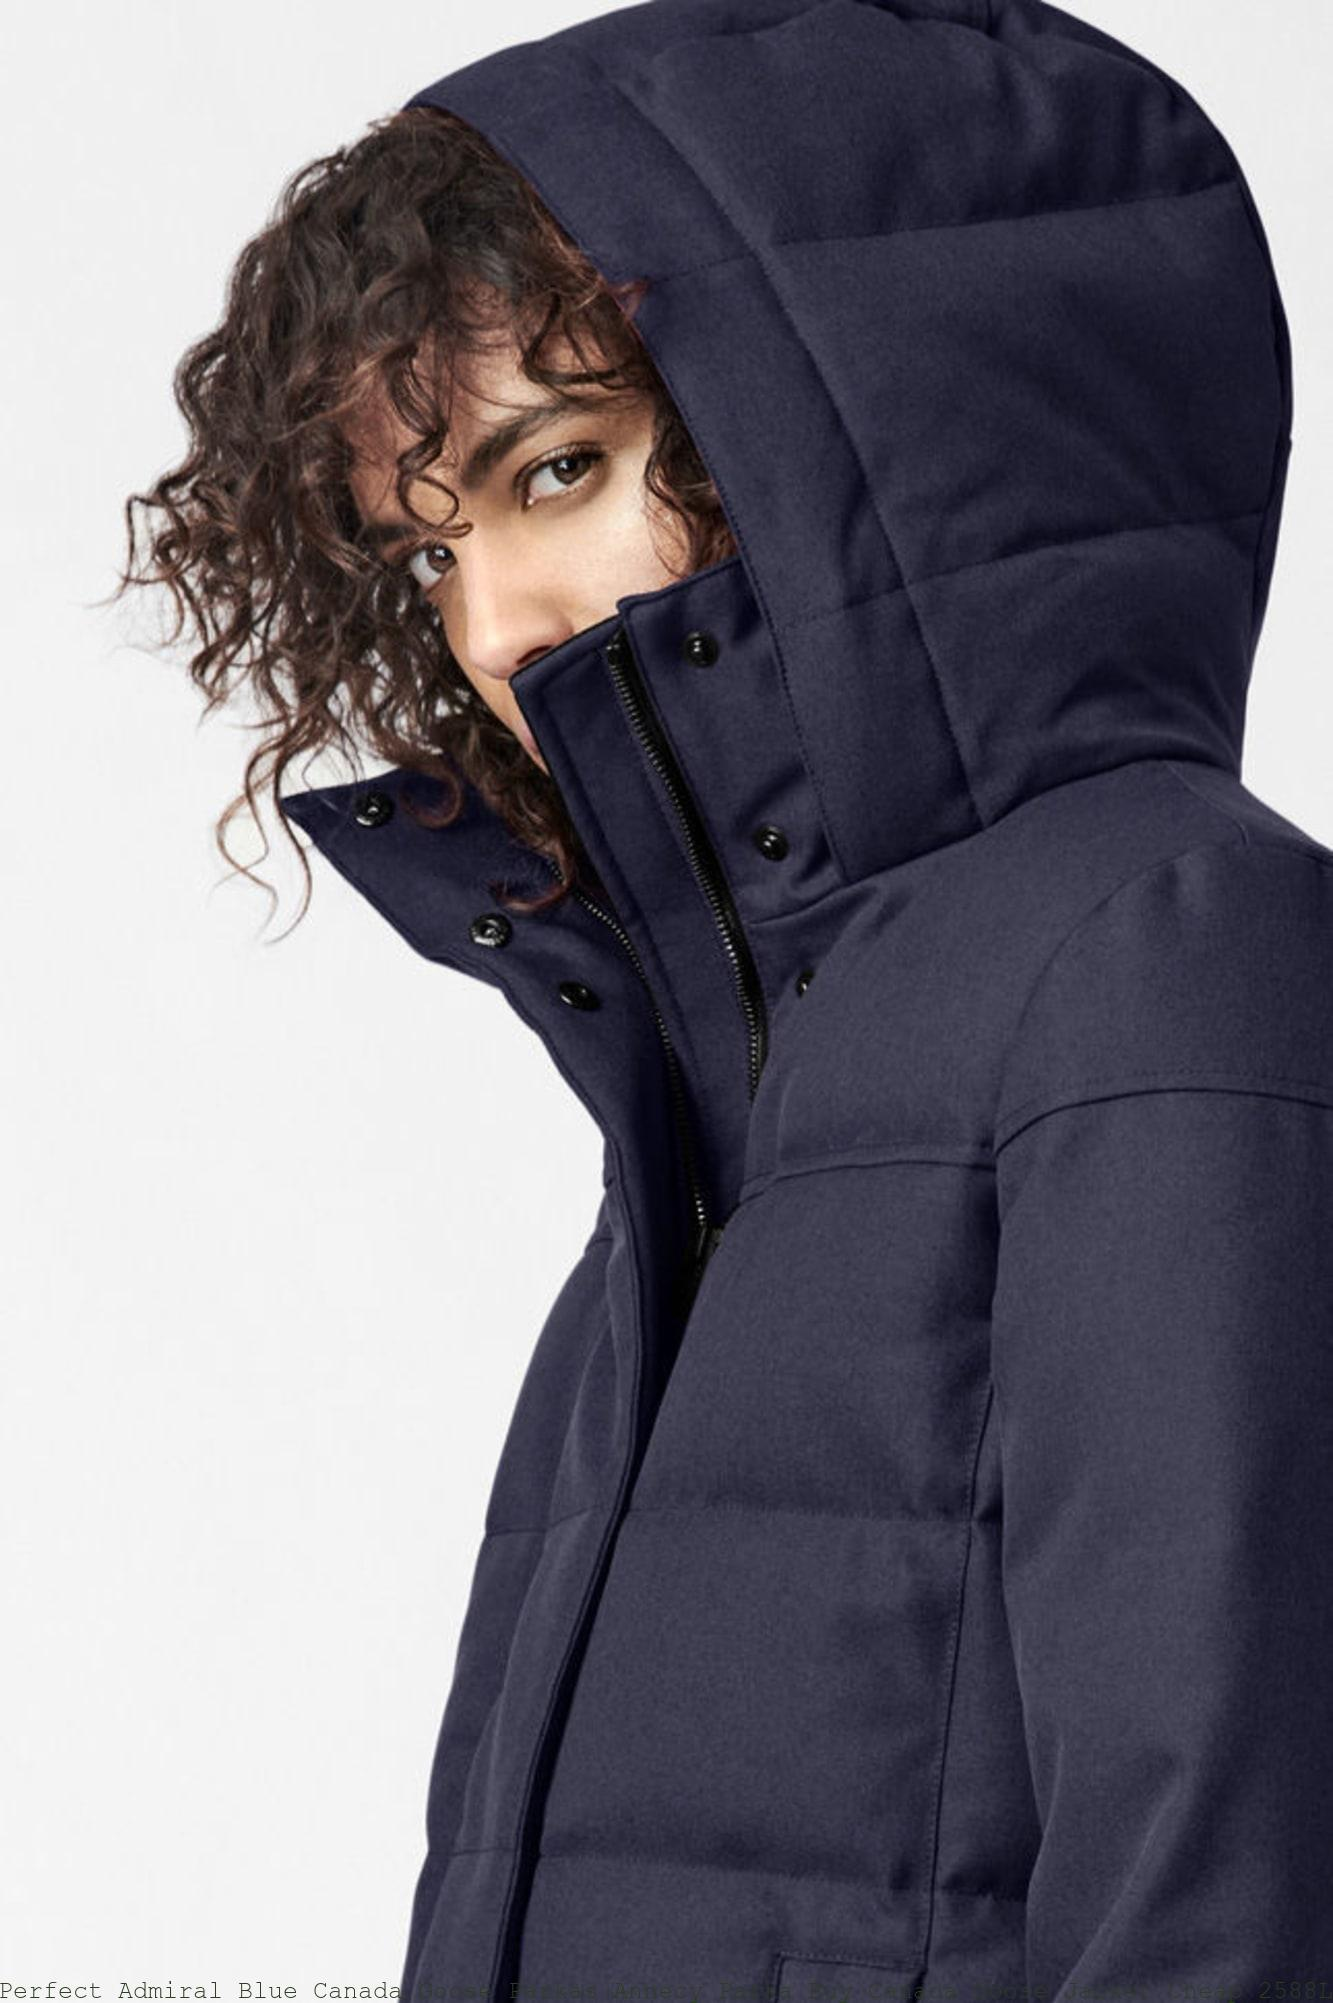 b4c39b796e2 Perfect Admiral Blue Canada Goose Parkas Annecy Parka Buy Canada Goose  Jacket Cheap 2588L